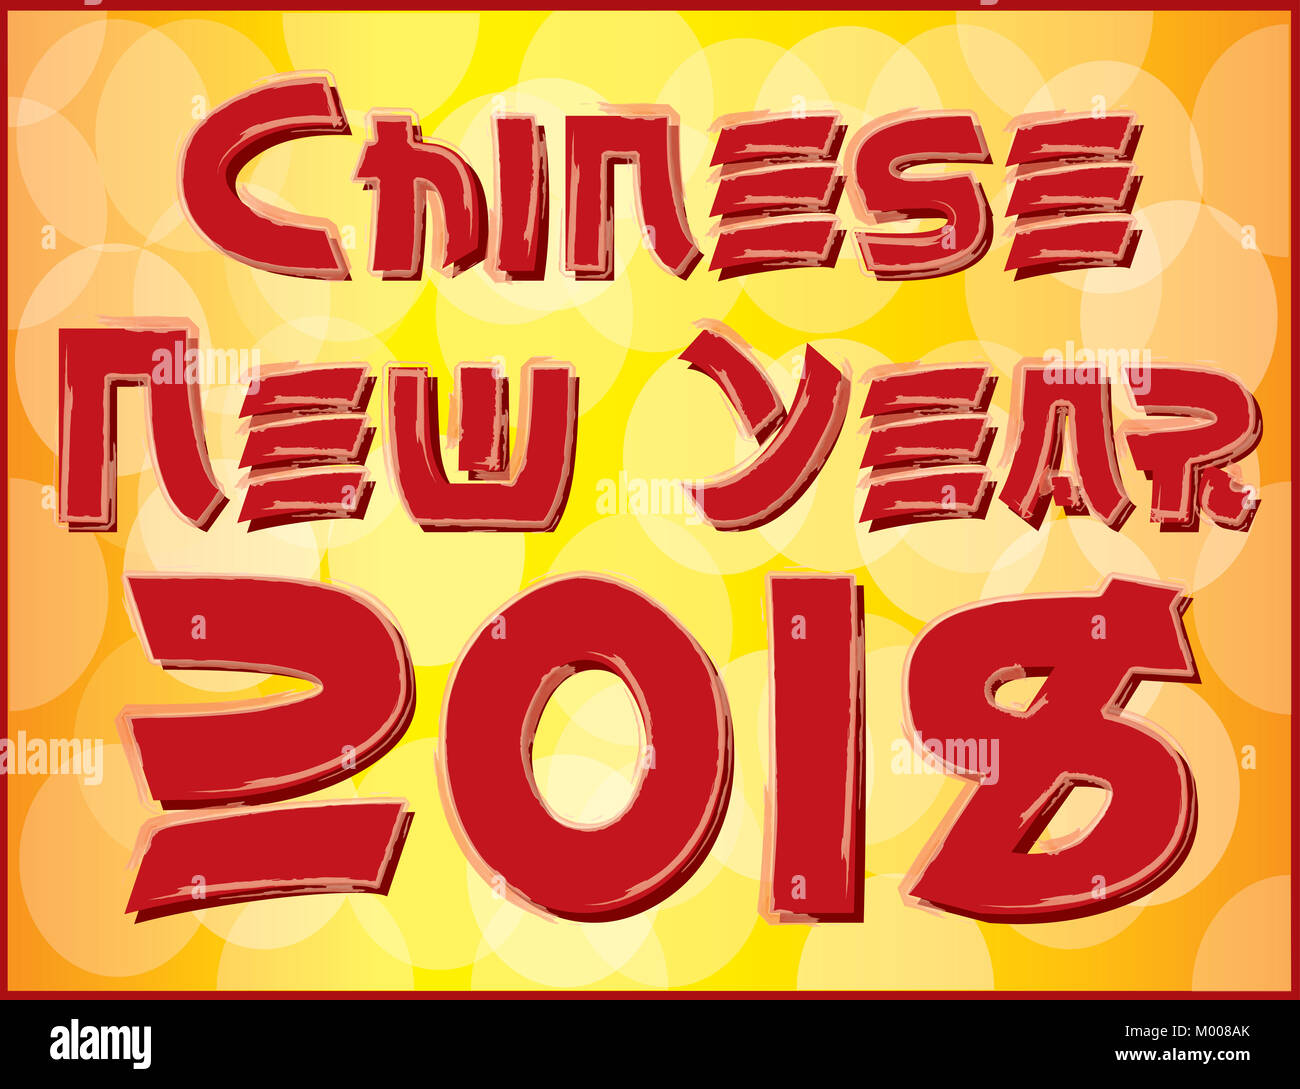 chinese new year 2018 banner logo in red and gold